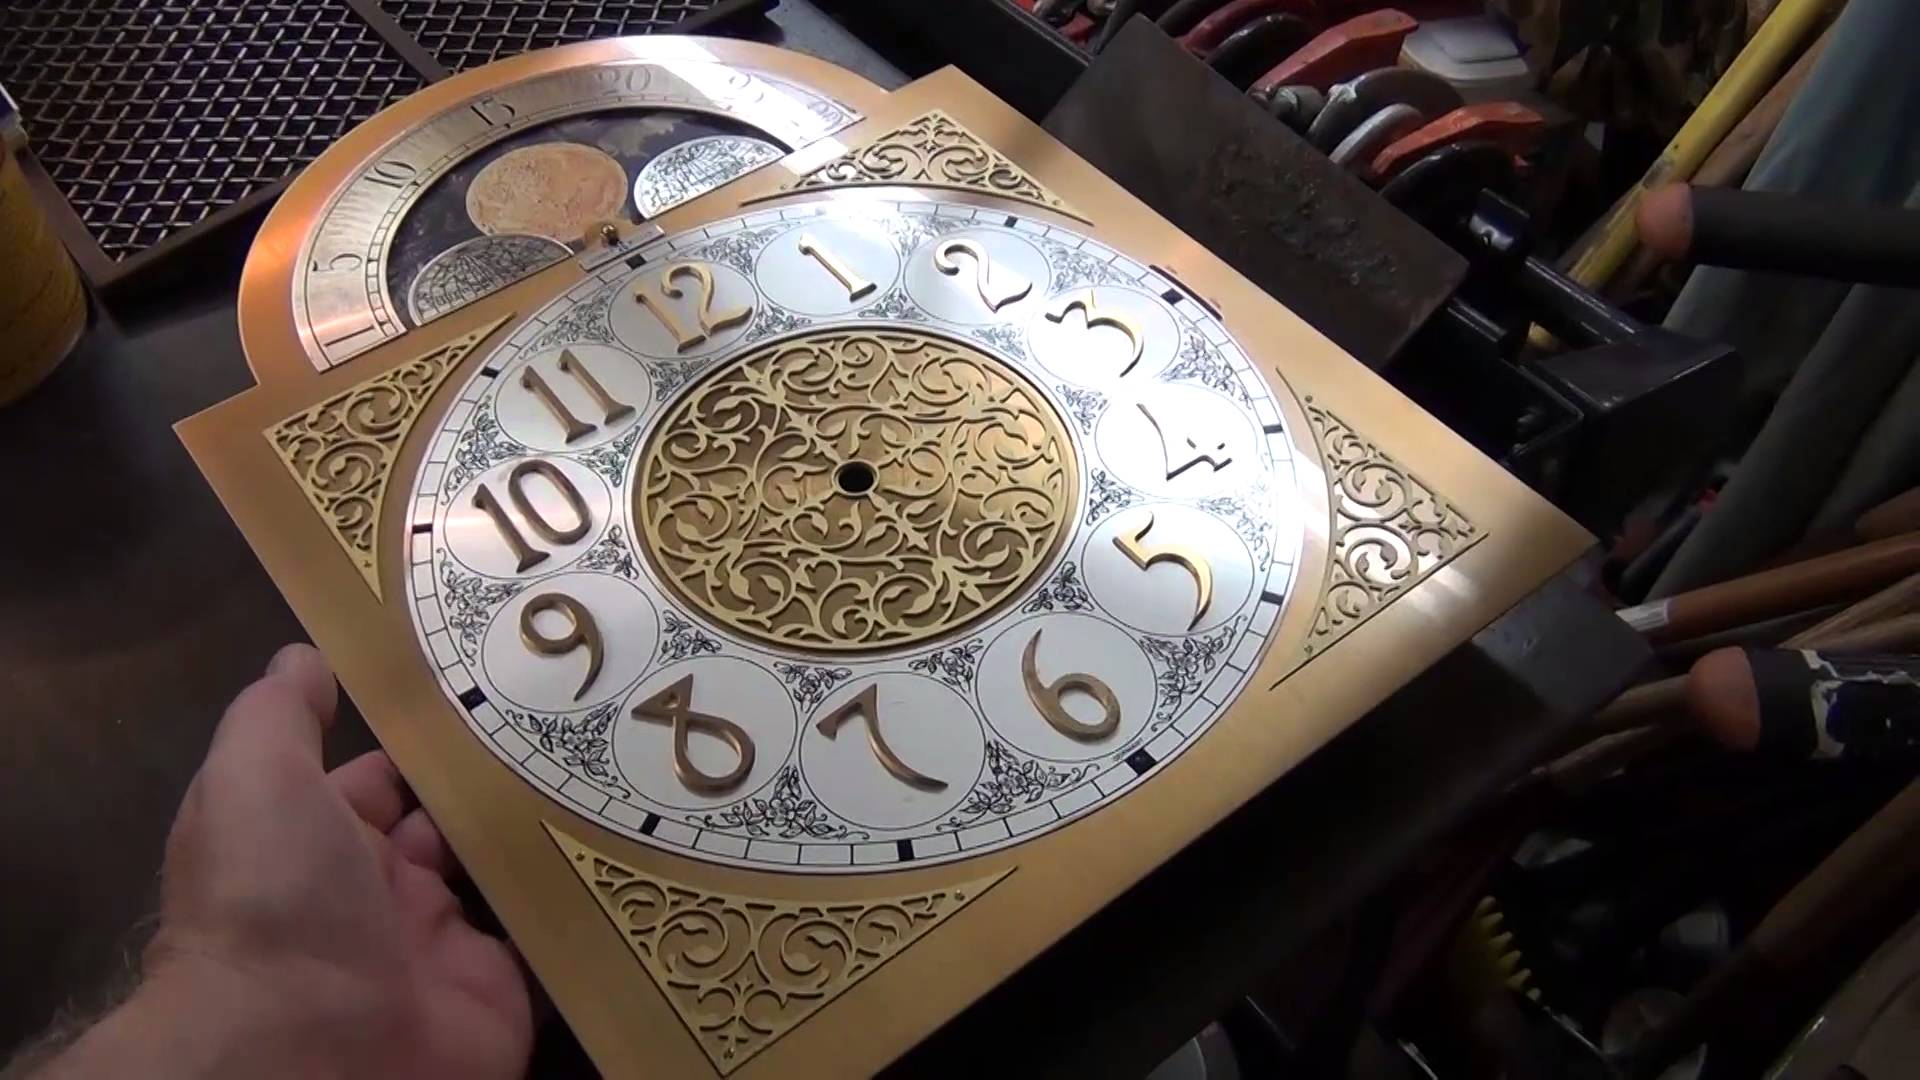 Howard Miller Clock Parts | Howard Miller Grandfather Clock Troubleshooting | Howard Miller Alarm Clock